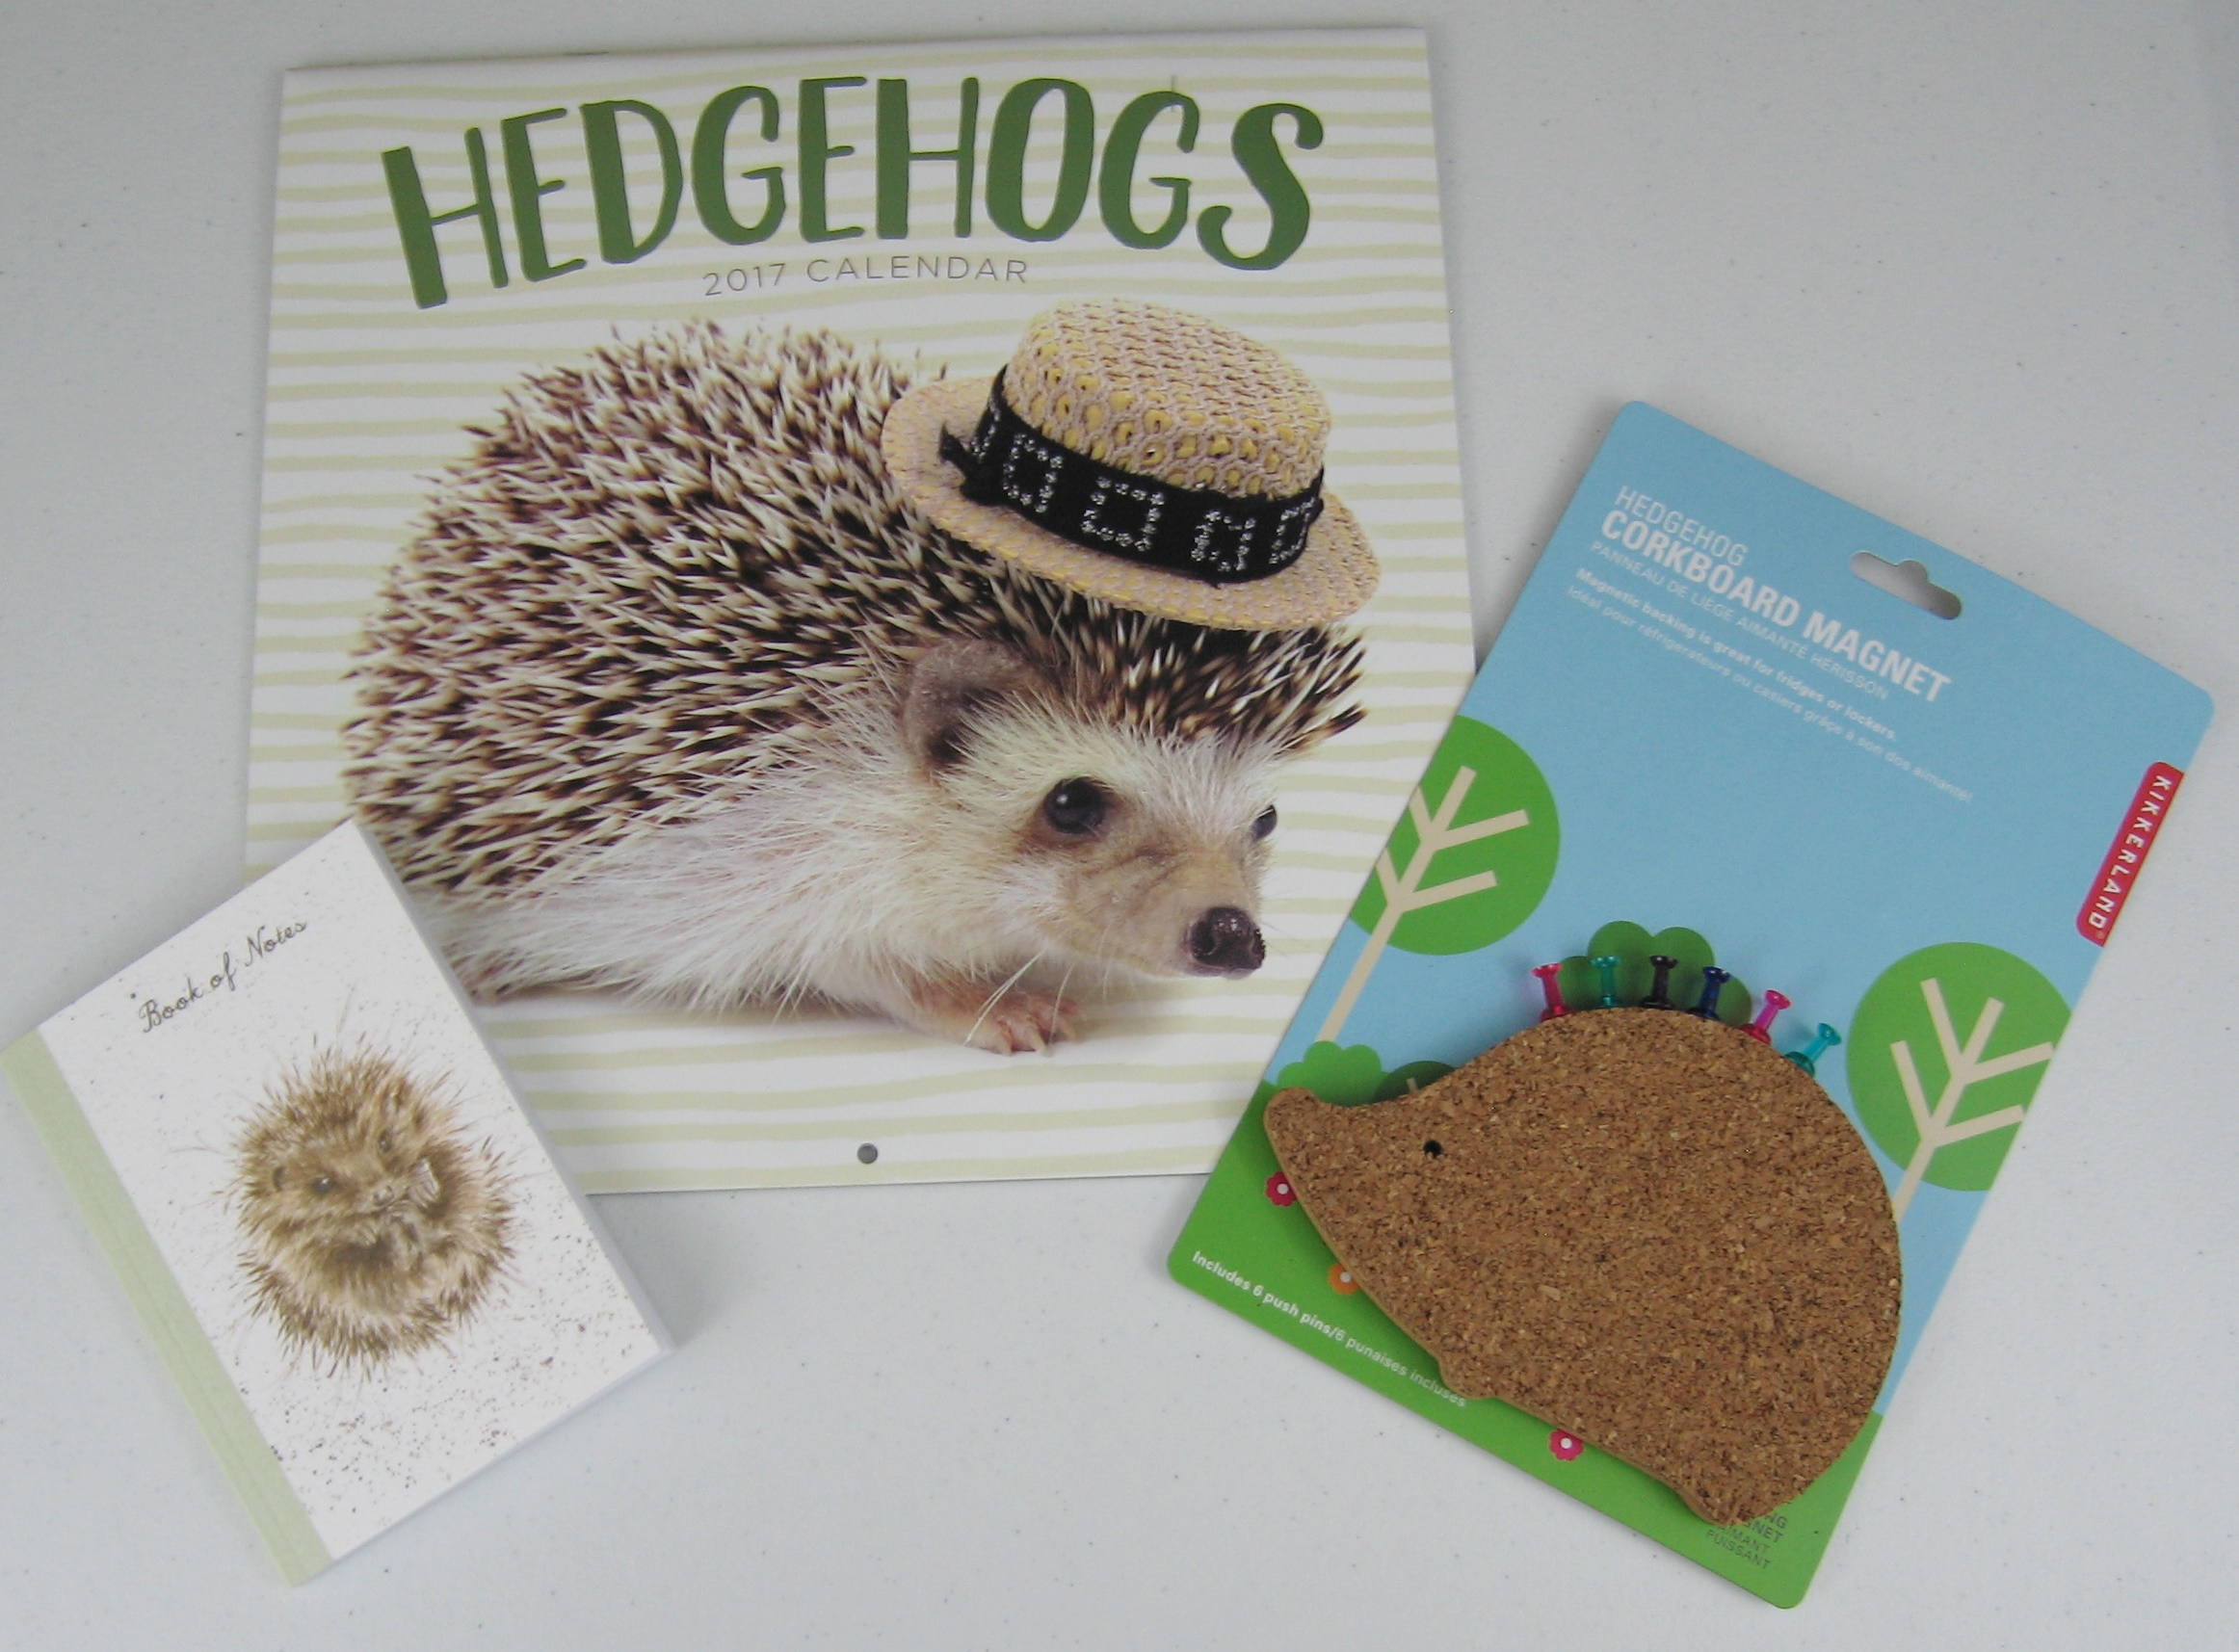 How To Make A Book Hedgehog ~ Houseful of hedgehogs my hedgehog collection